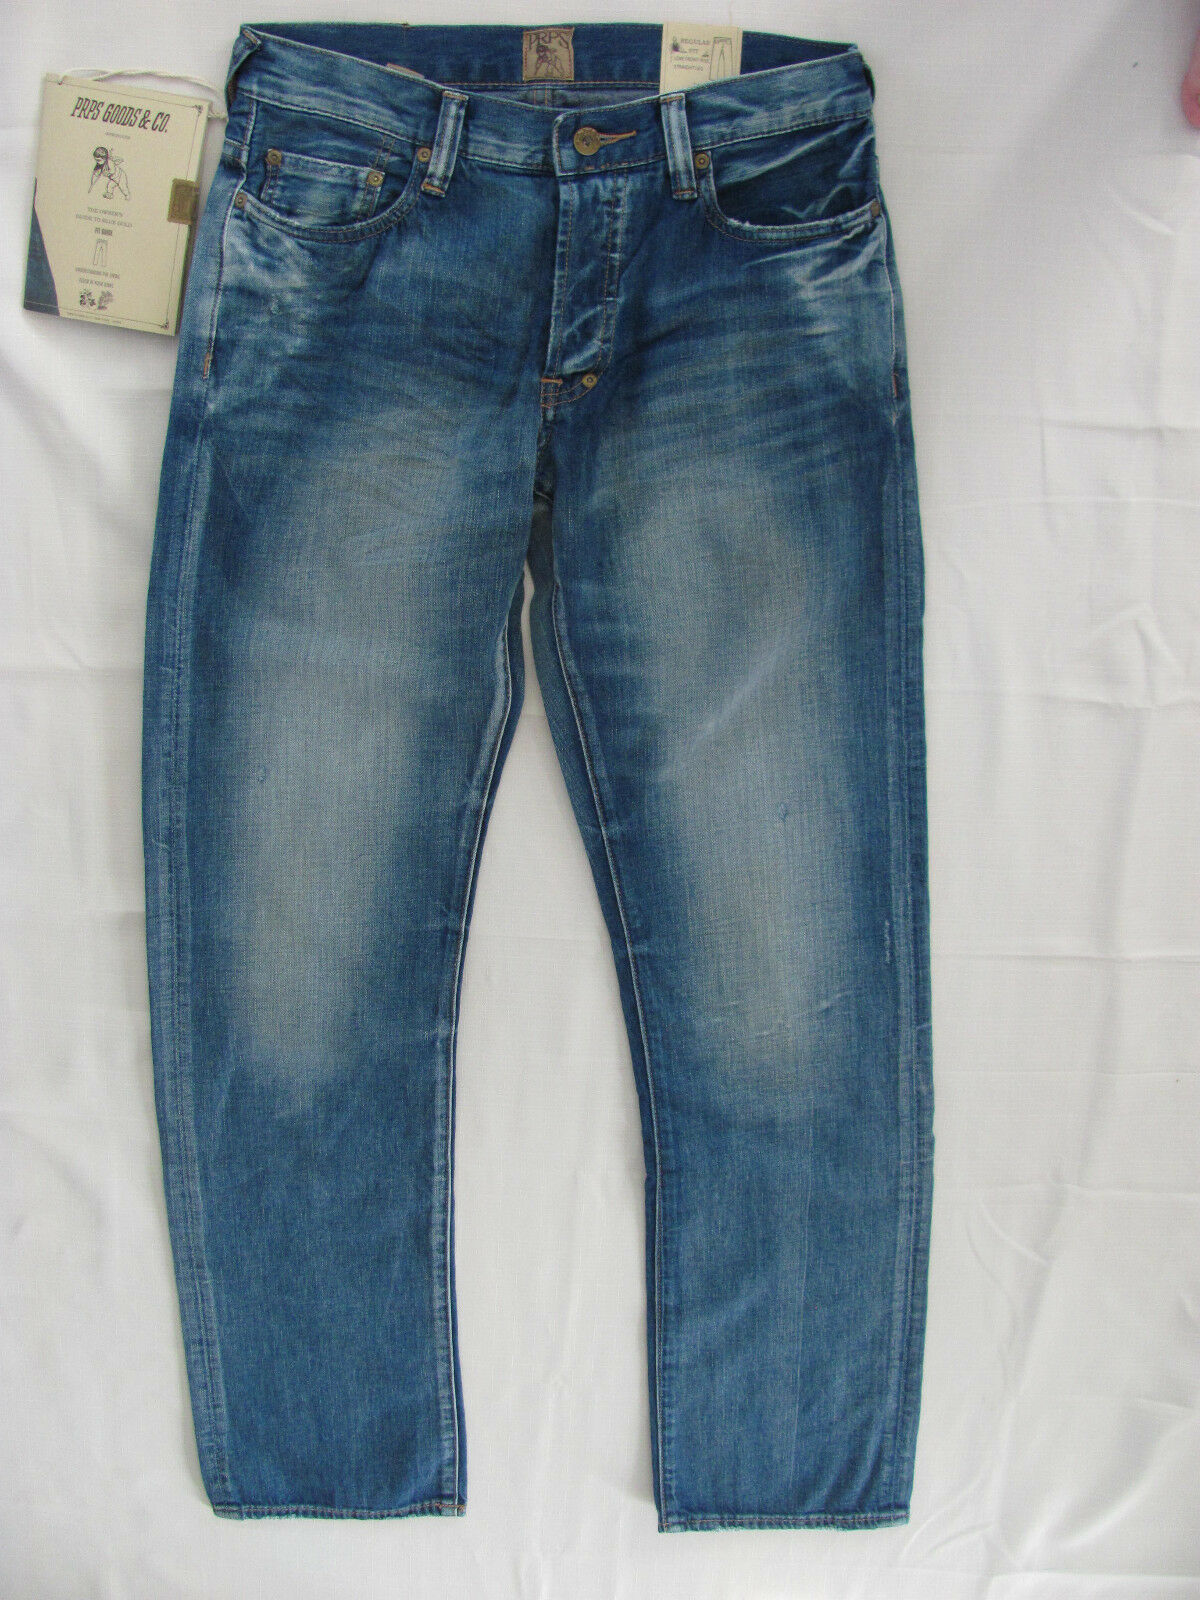 4a6fd1a622 PRPS Goods Barracuda Regular Fit E67P71X color- LGB Jeans Straight- Size 30